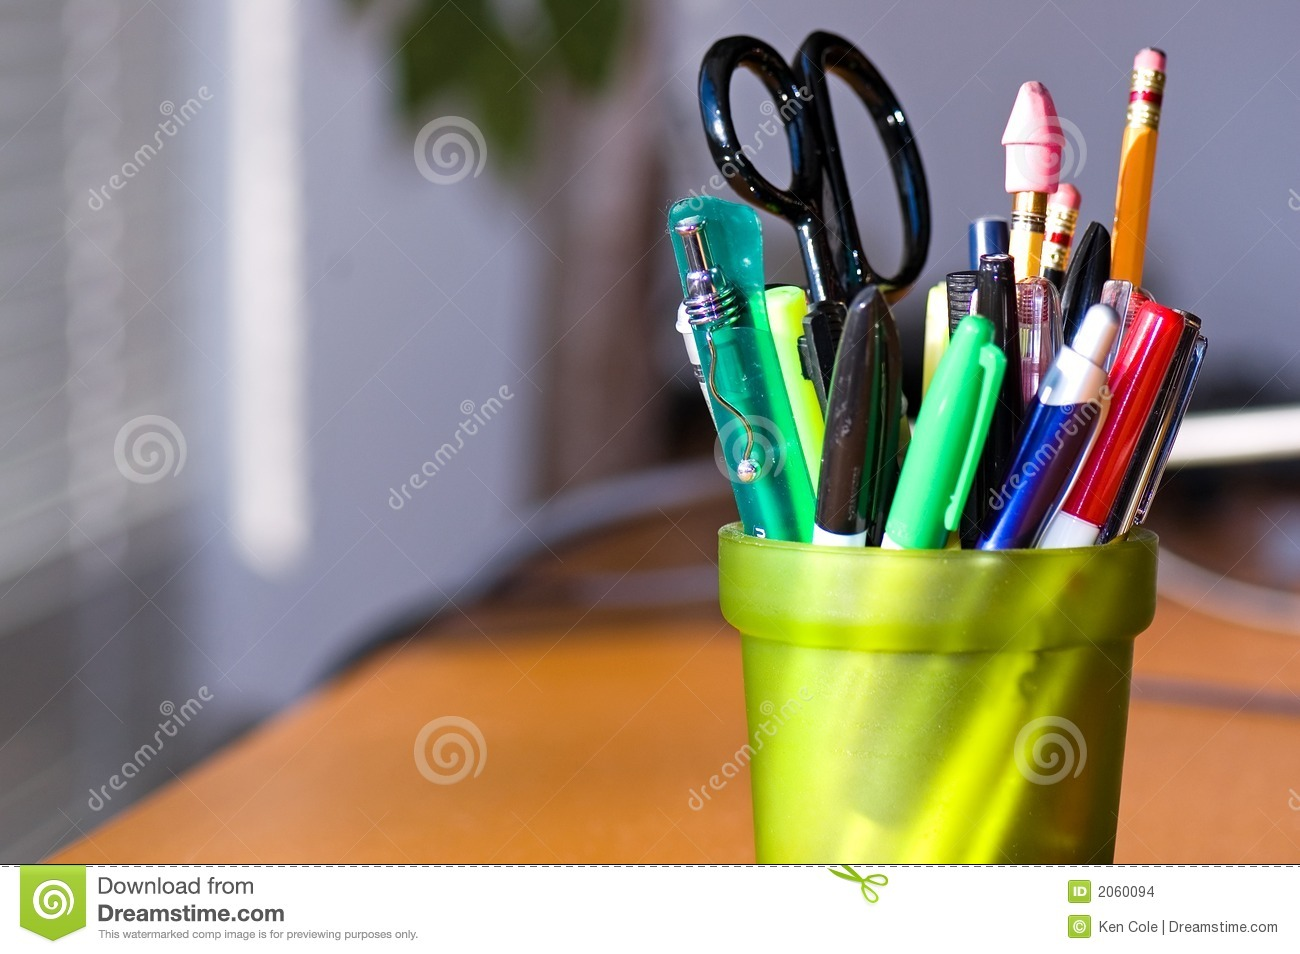 Pen And Pencil Holder For Desk Pen And Pencil Holder On Desk Stock Images Image 2060094